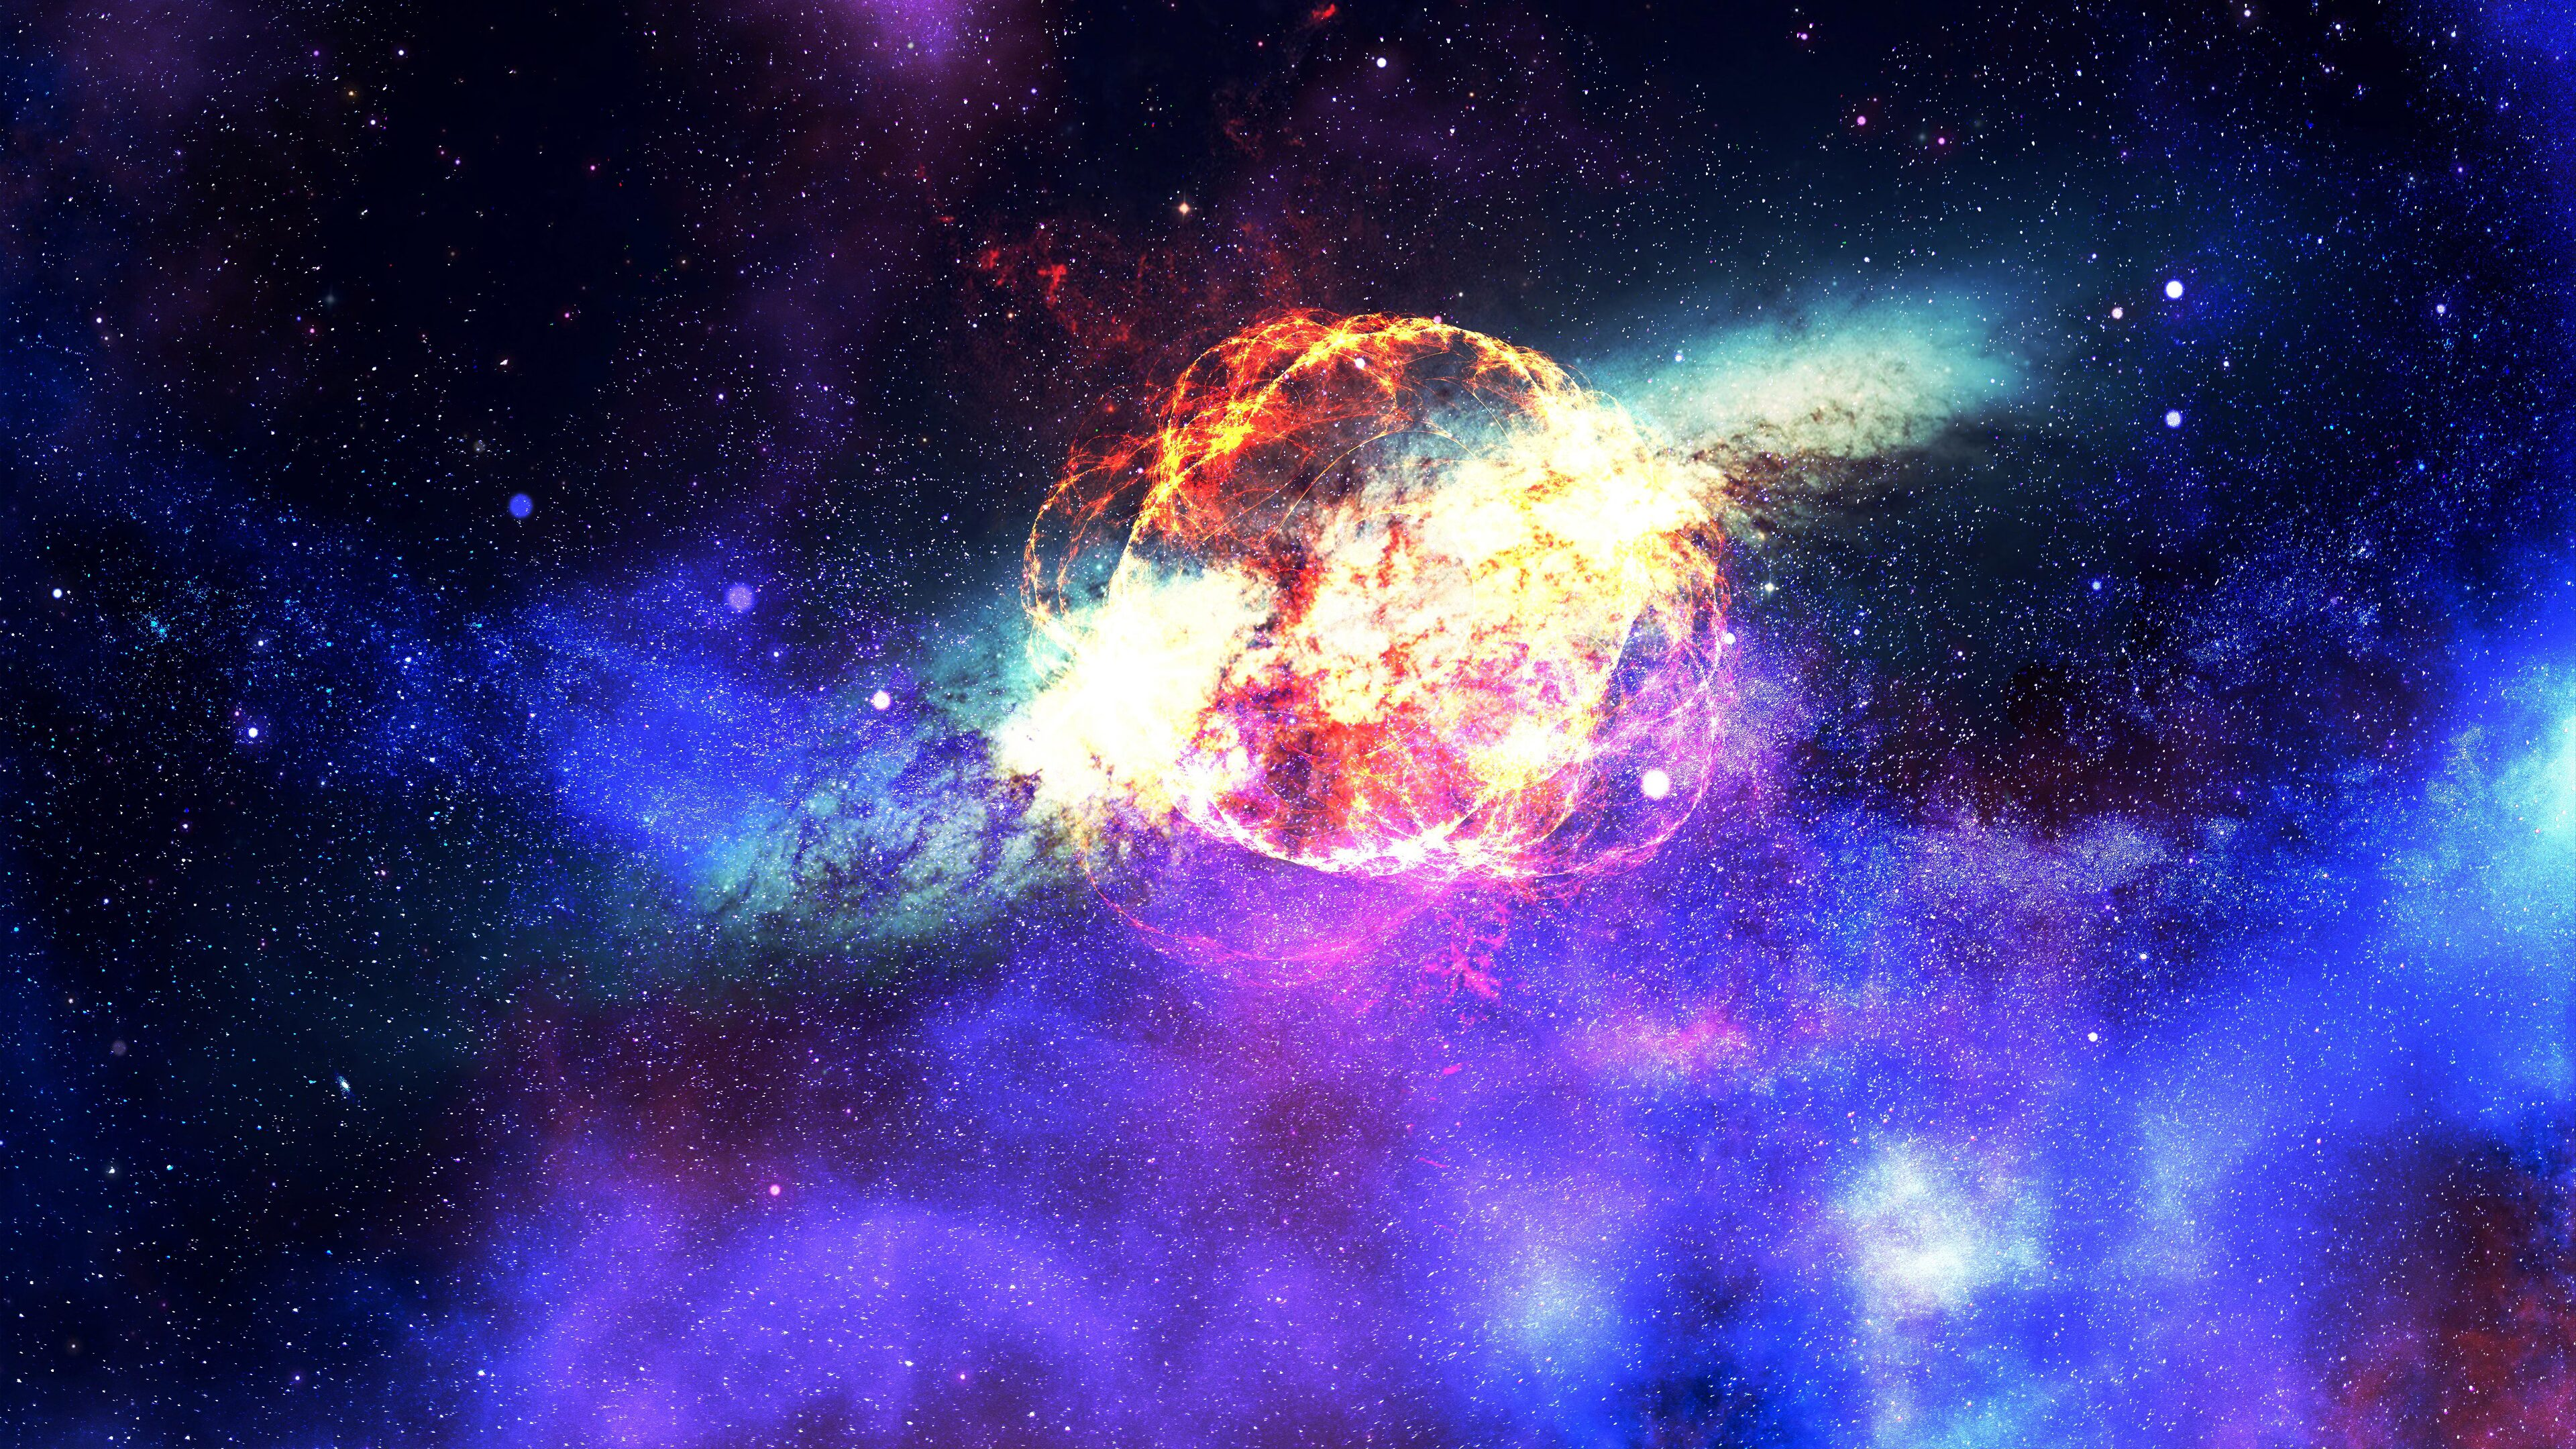 3840x2160 Nebula Galaxy Outer Space 4k HD 4k Wallpapers ...